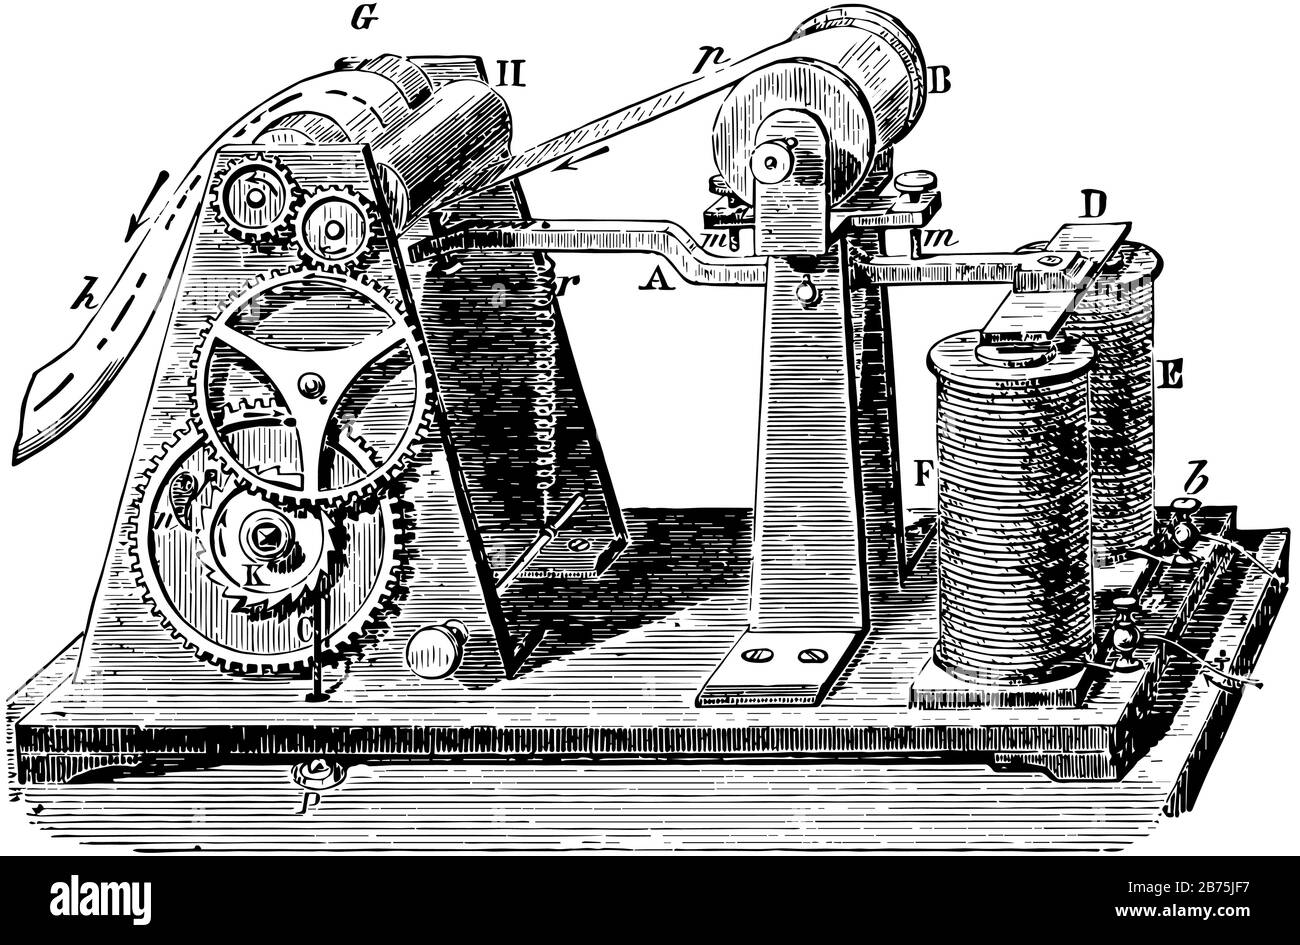 This illustration represents Magnetic Telegraph which represents the construction and arrangement of this form of telegraph, vintage line drawing or e Stock Vector